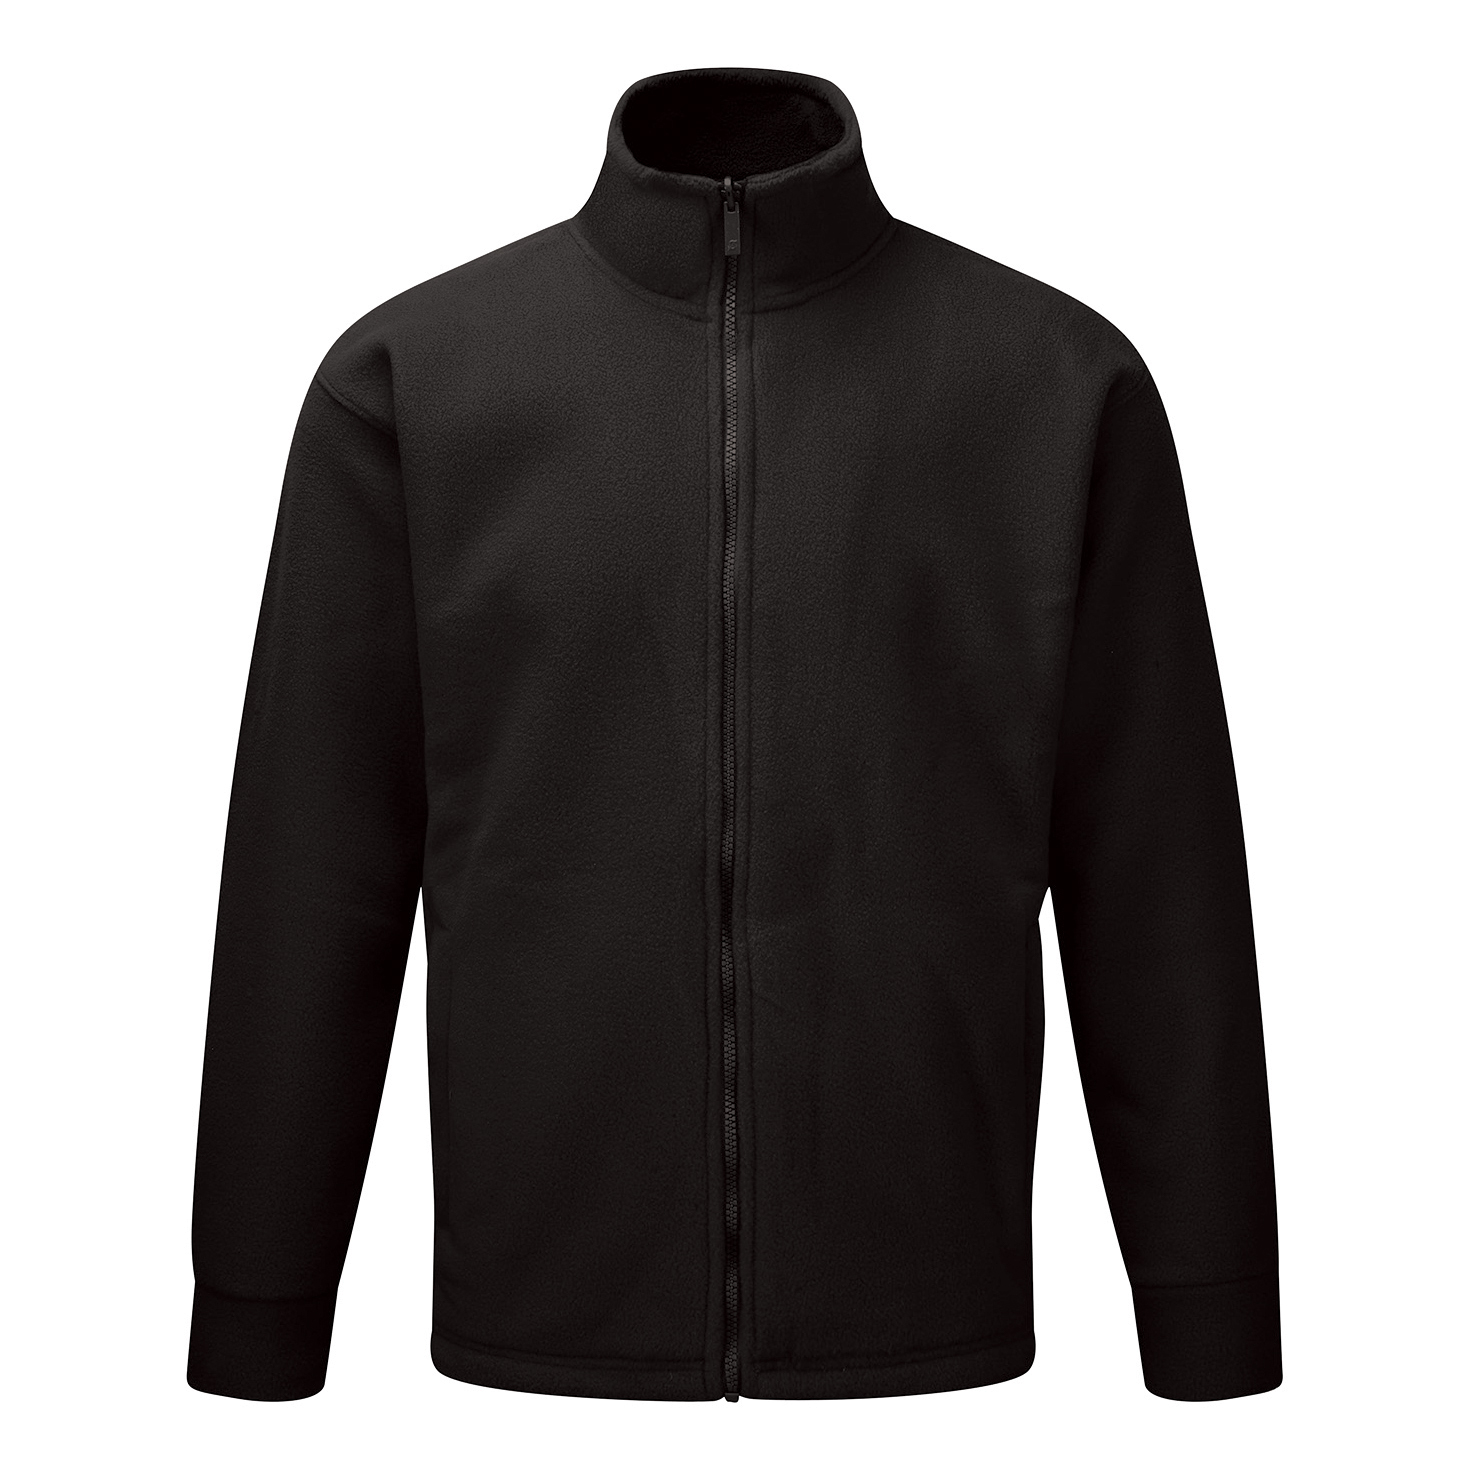 Classic Fleece Jacket Elasticated Cuffs Full Zip Front 2XL Black Ref FLJBLXXL 1-3 Days Lead Time